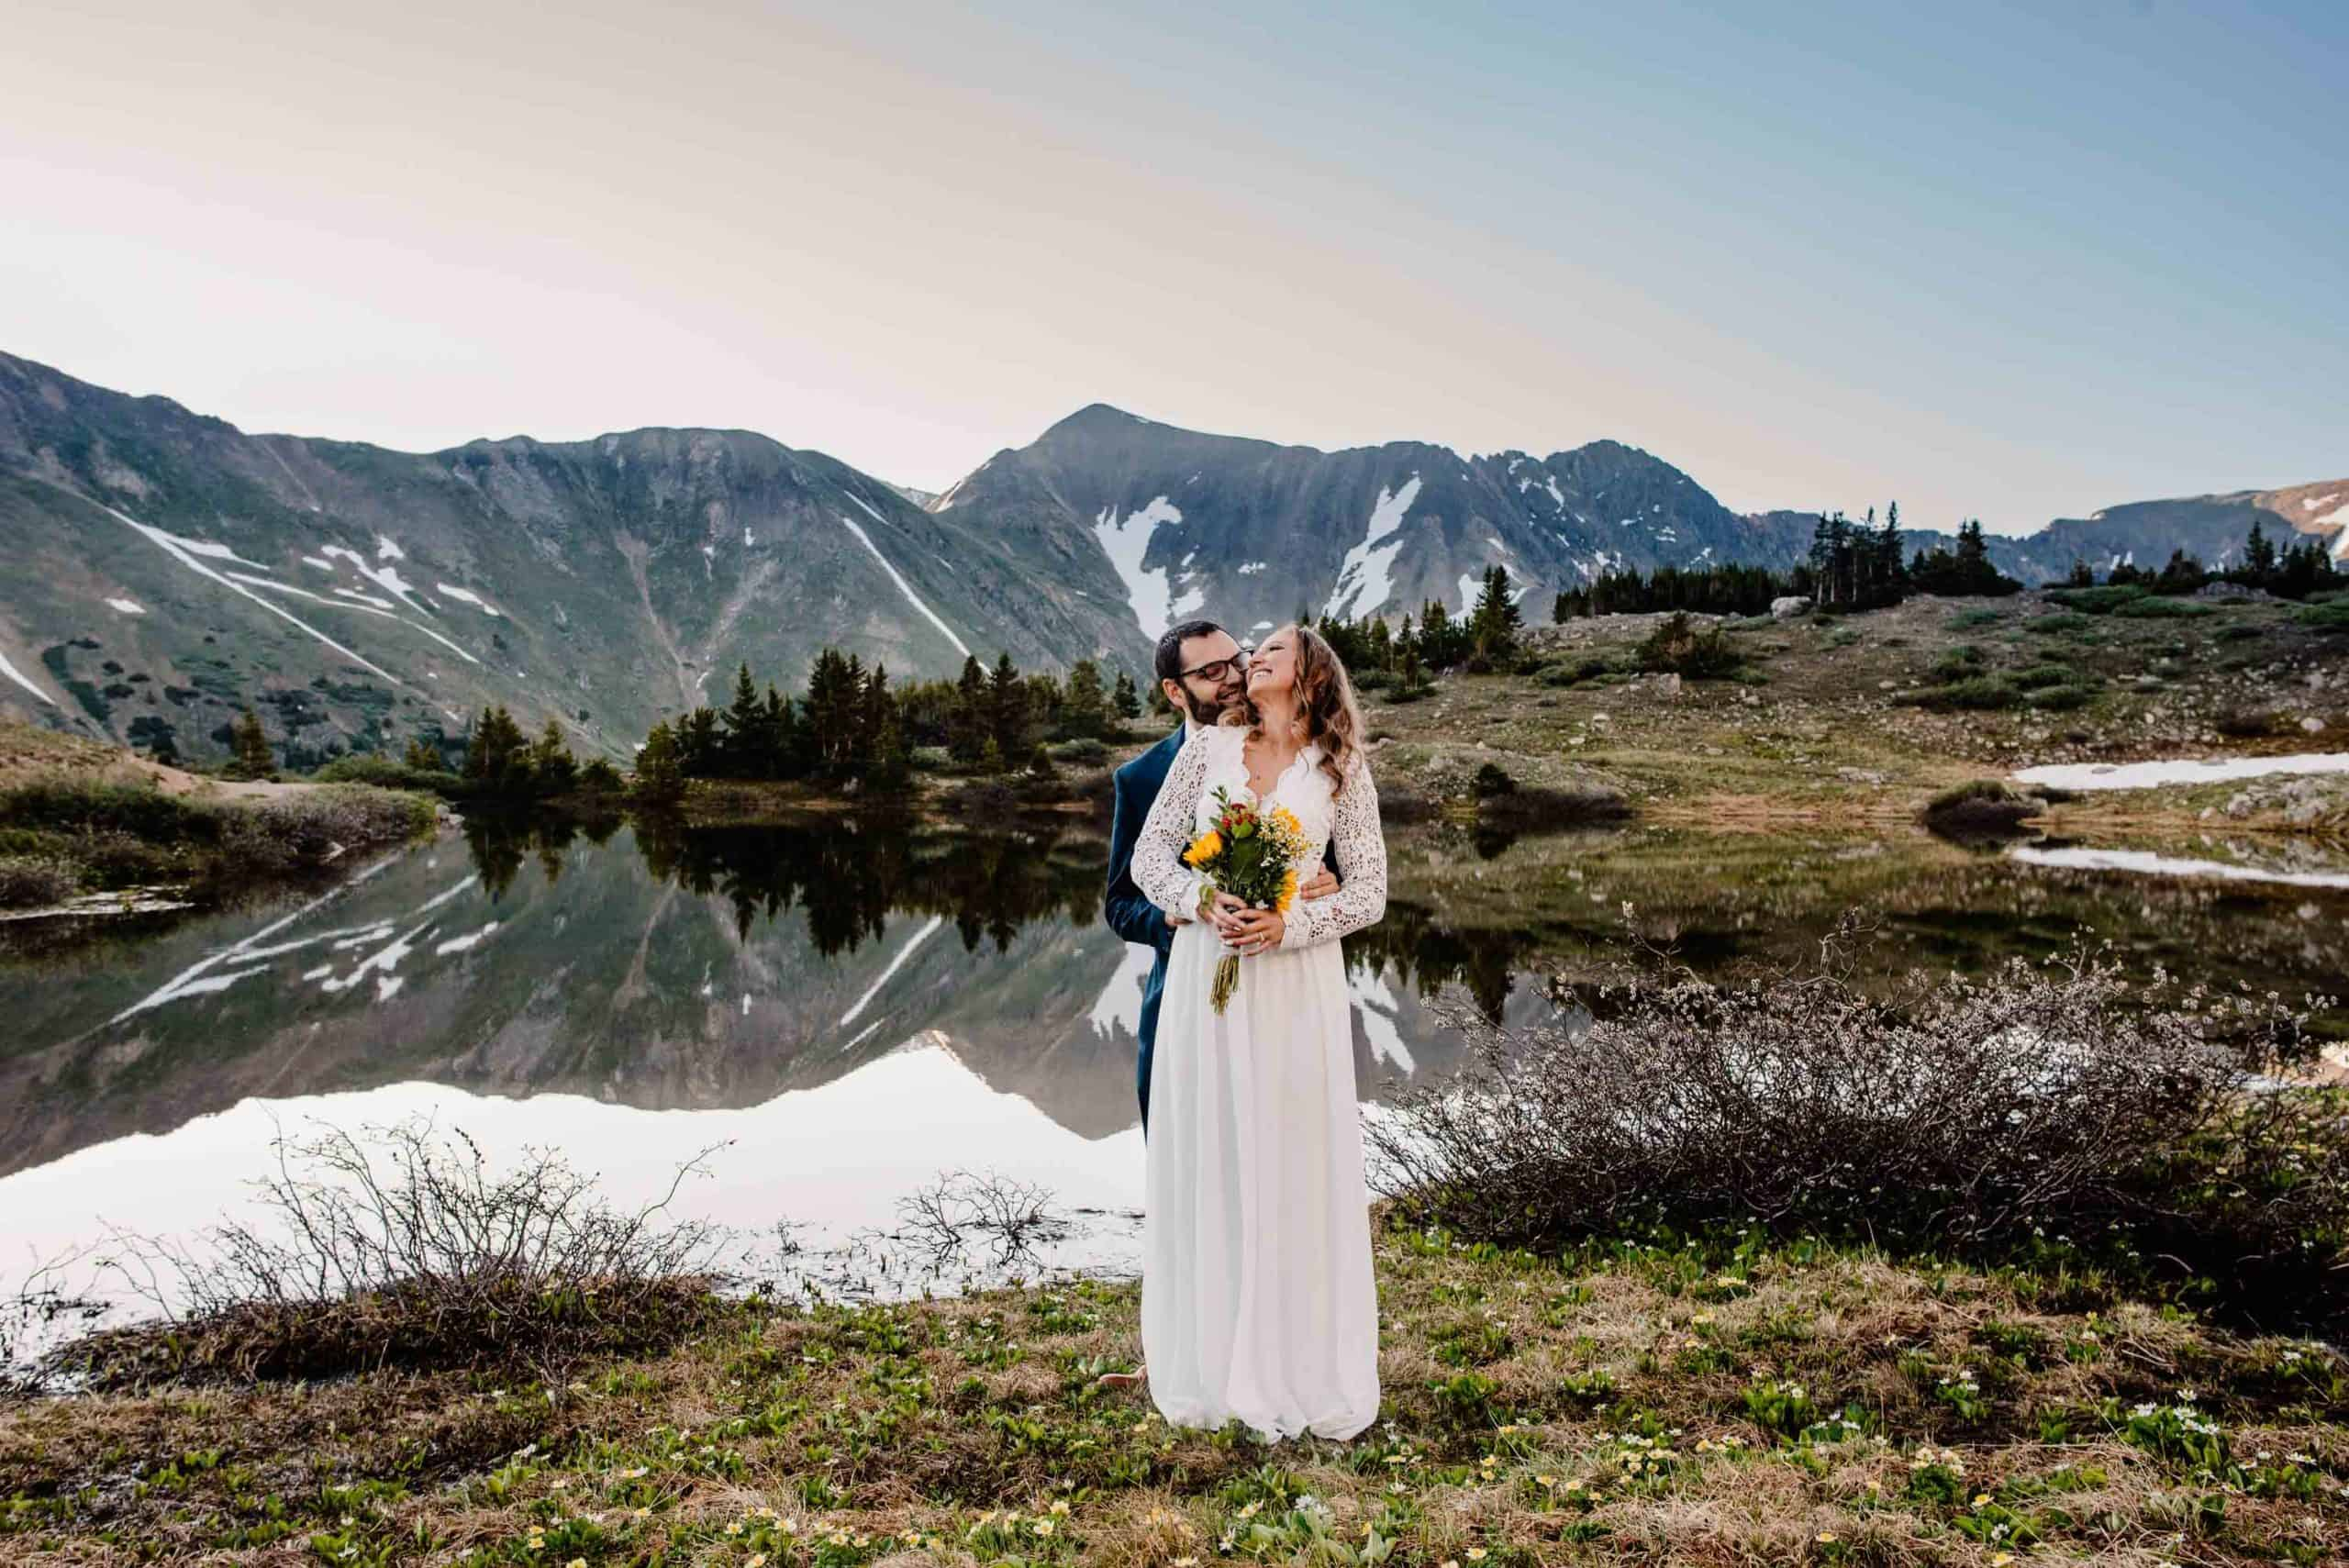 groom standing behind bride wrapping his arms around her kissing her cheek as they stand near an alpine lake with sweeping mountain views